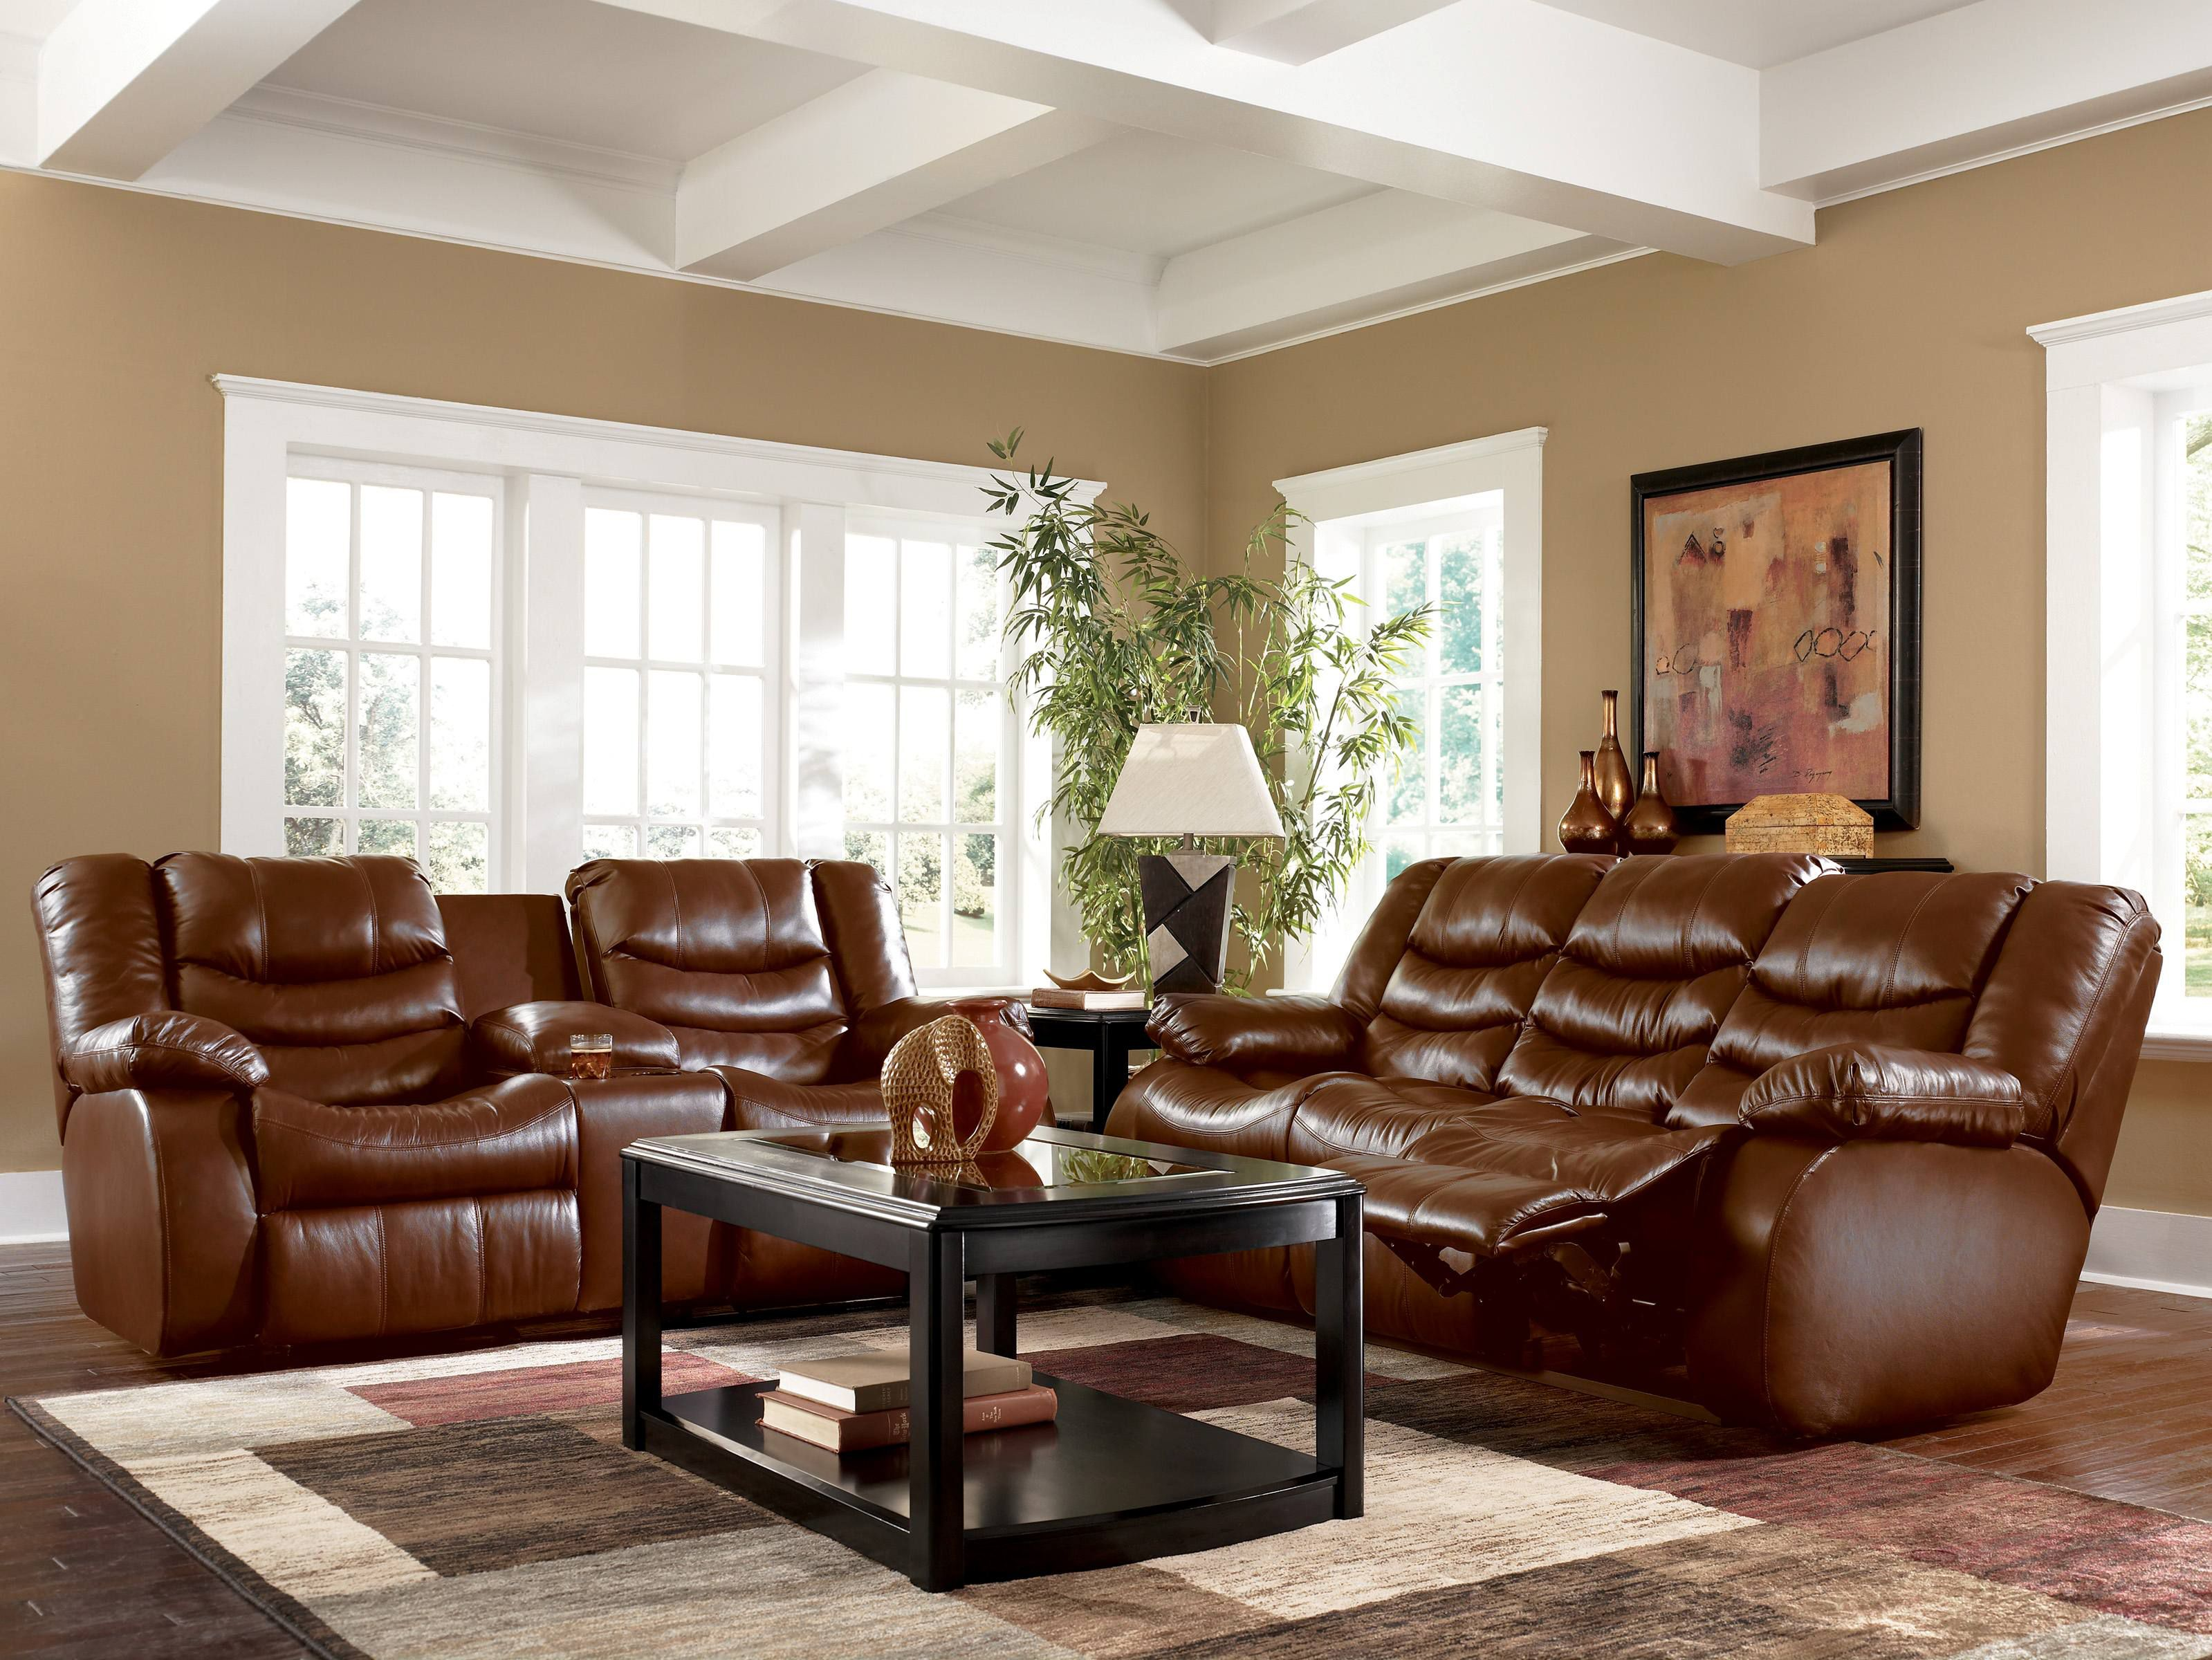 Living Room Decor With Brown Leather Sofa Best Living Room With Brown Couches  I Like The White Around The . Inspiration Design